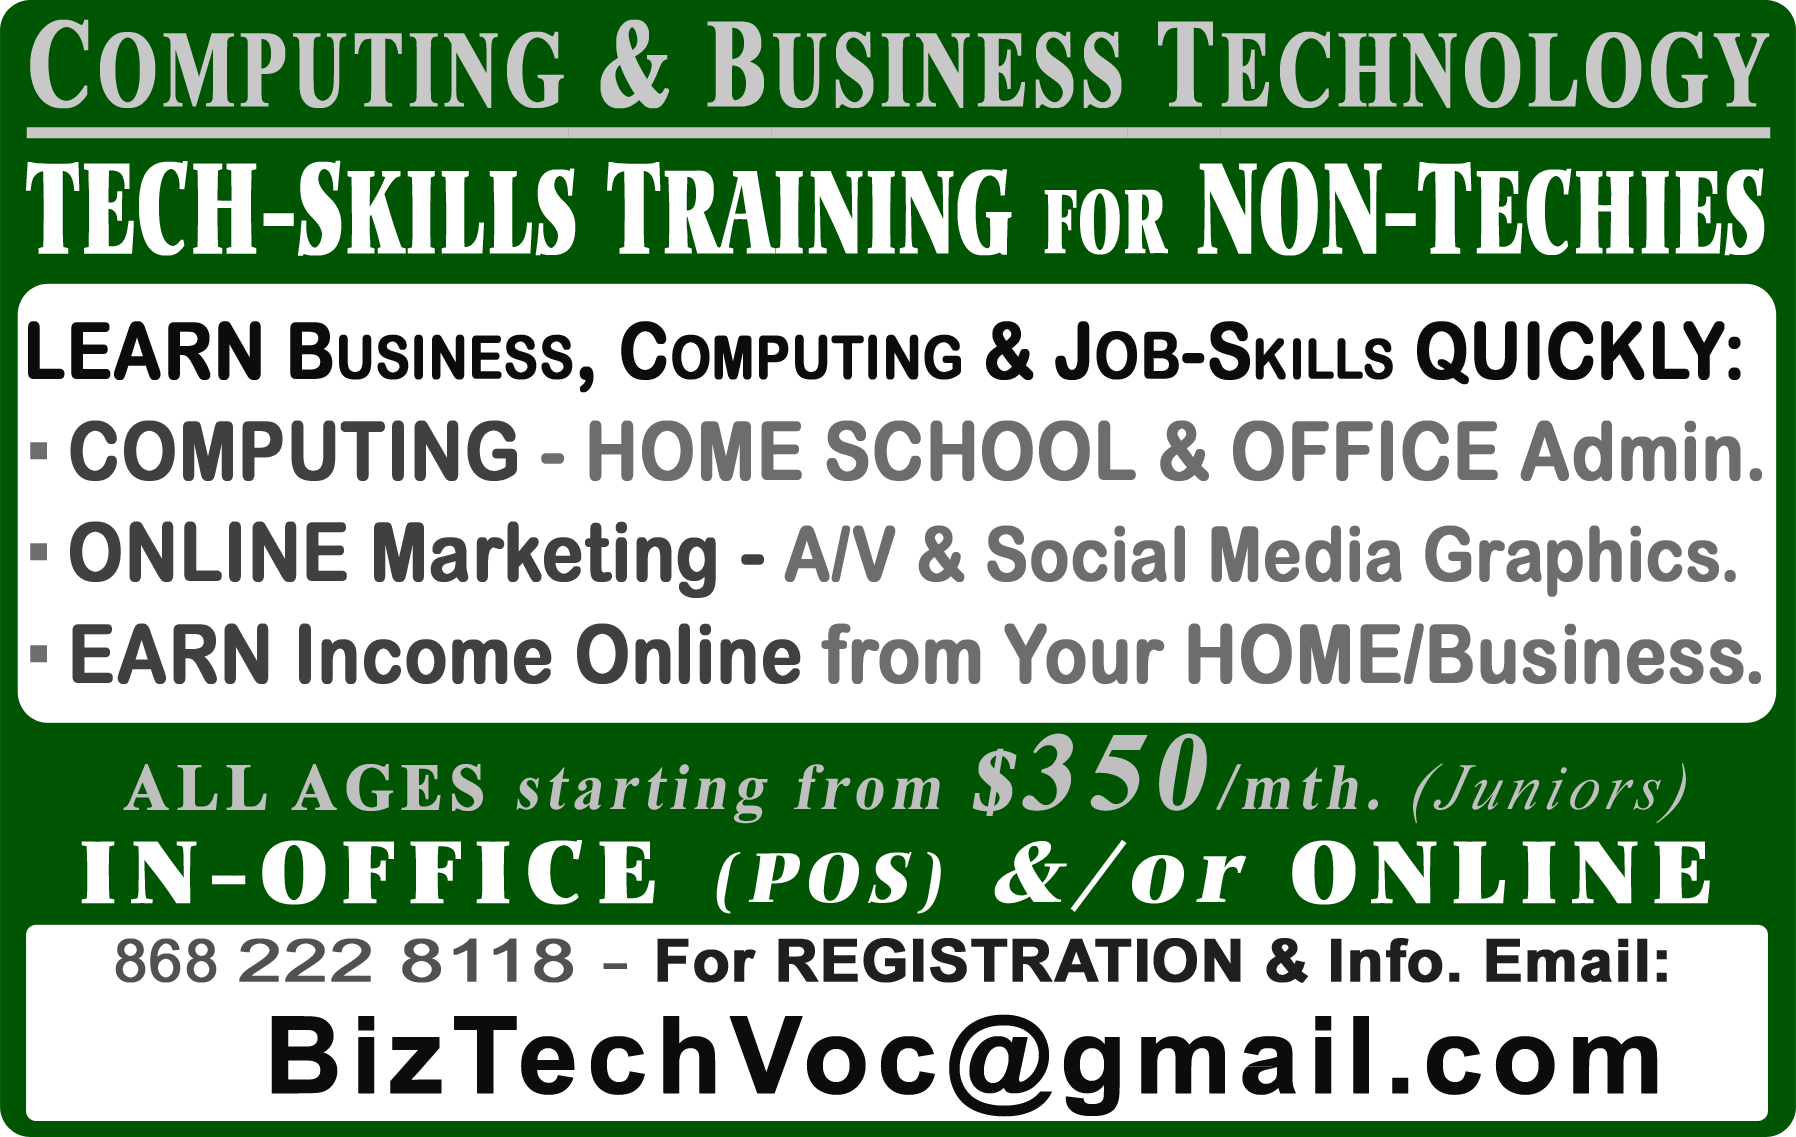 BizTech Business & Technology Skills Training